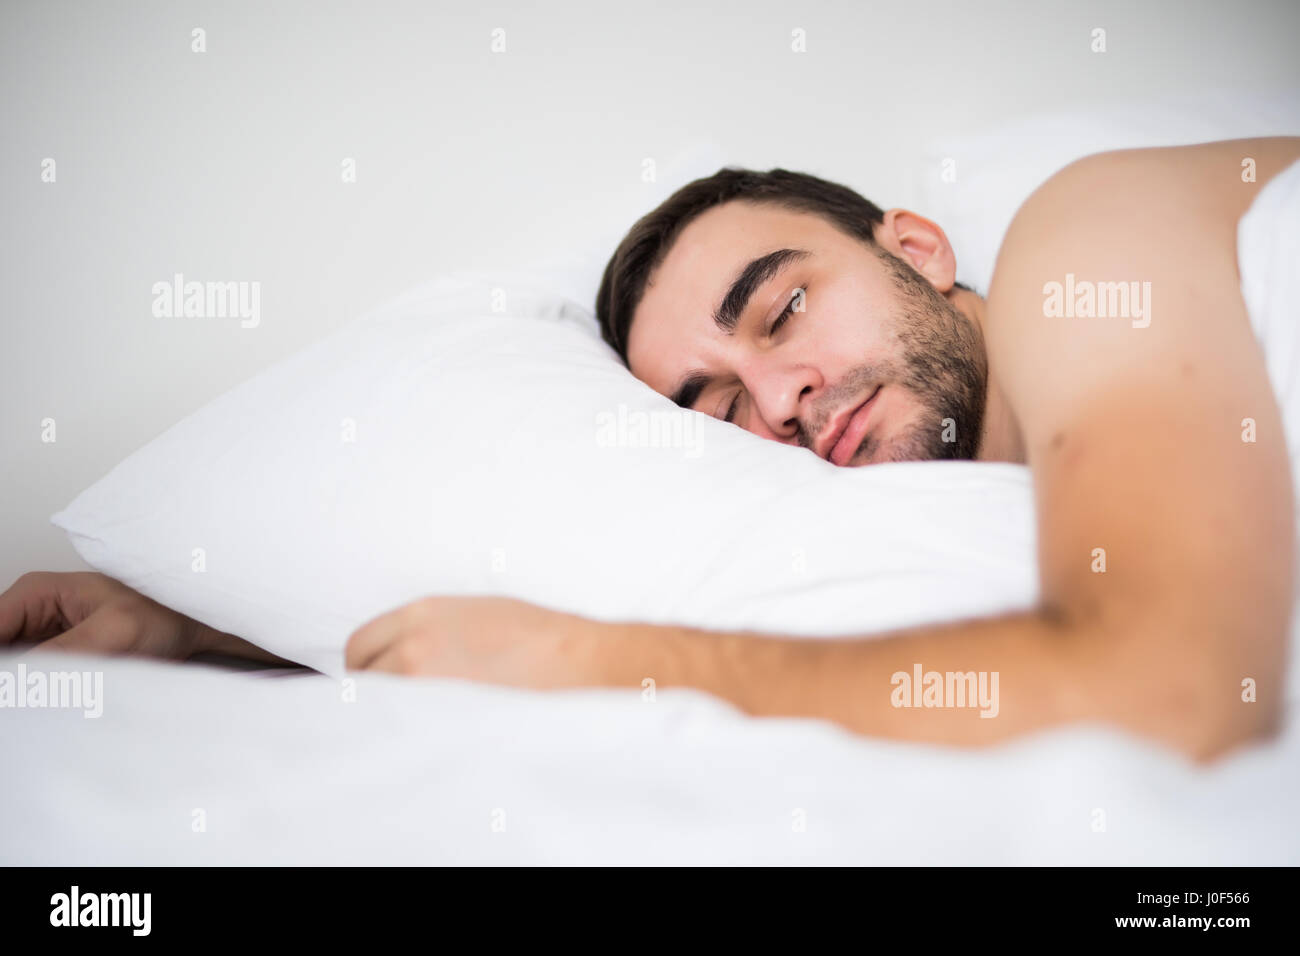 Handsome young man sleeping in white bedding - Stock Image